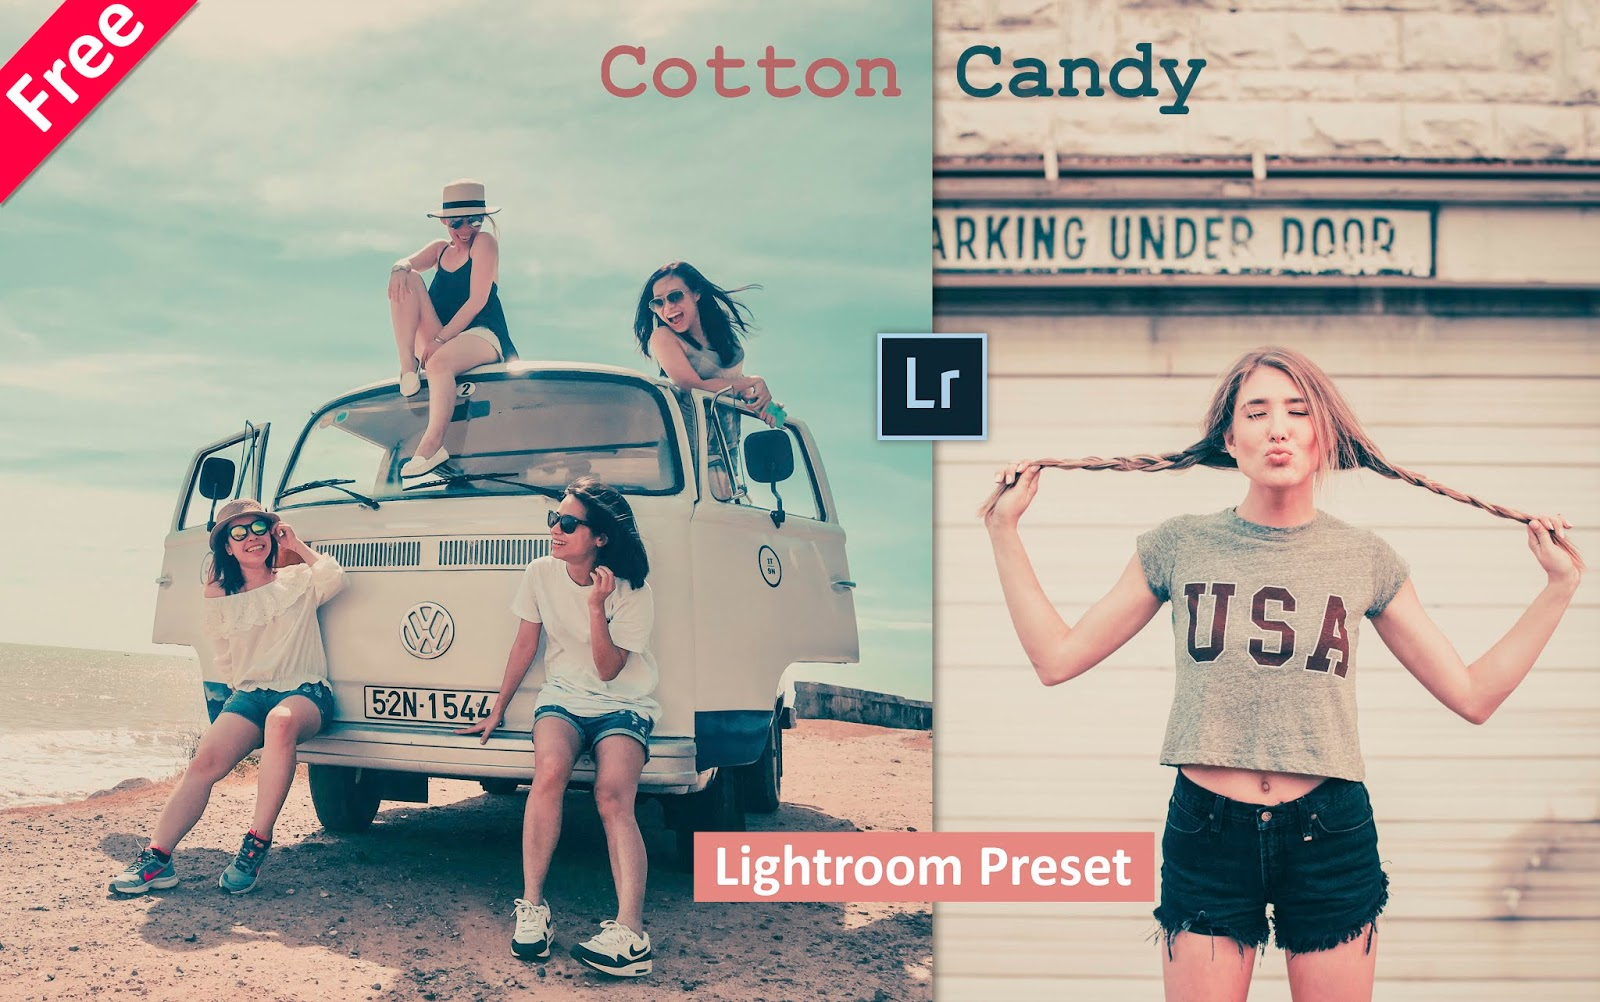 Download Cotton Candy Lightroom Preset for Free | How to Create Cotton Candy Pinkish Blue Effect in Lightroom